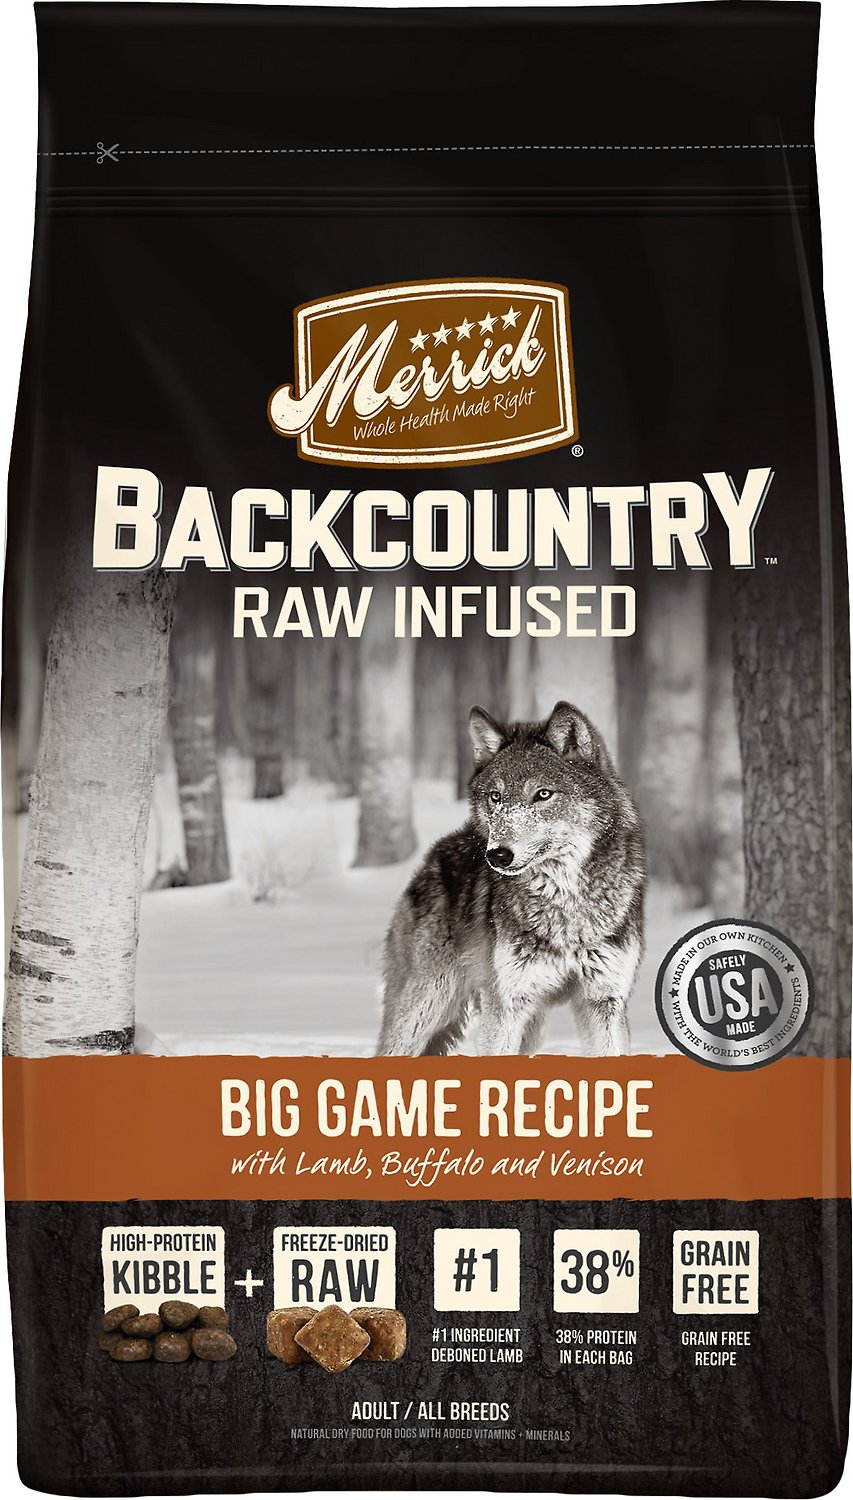 Merrick Backcountry Raw Infused Big Game Recipe with Lamb, Buffalo & Venison Grain-Free Dry Dog Food Image